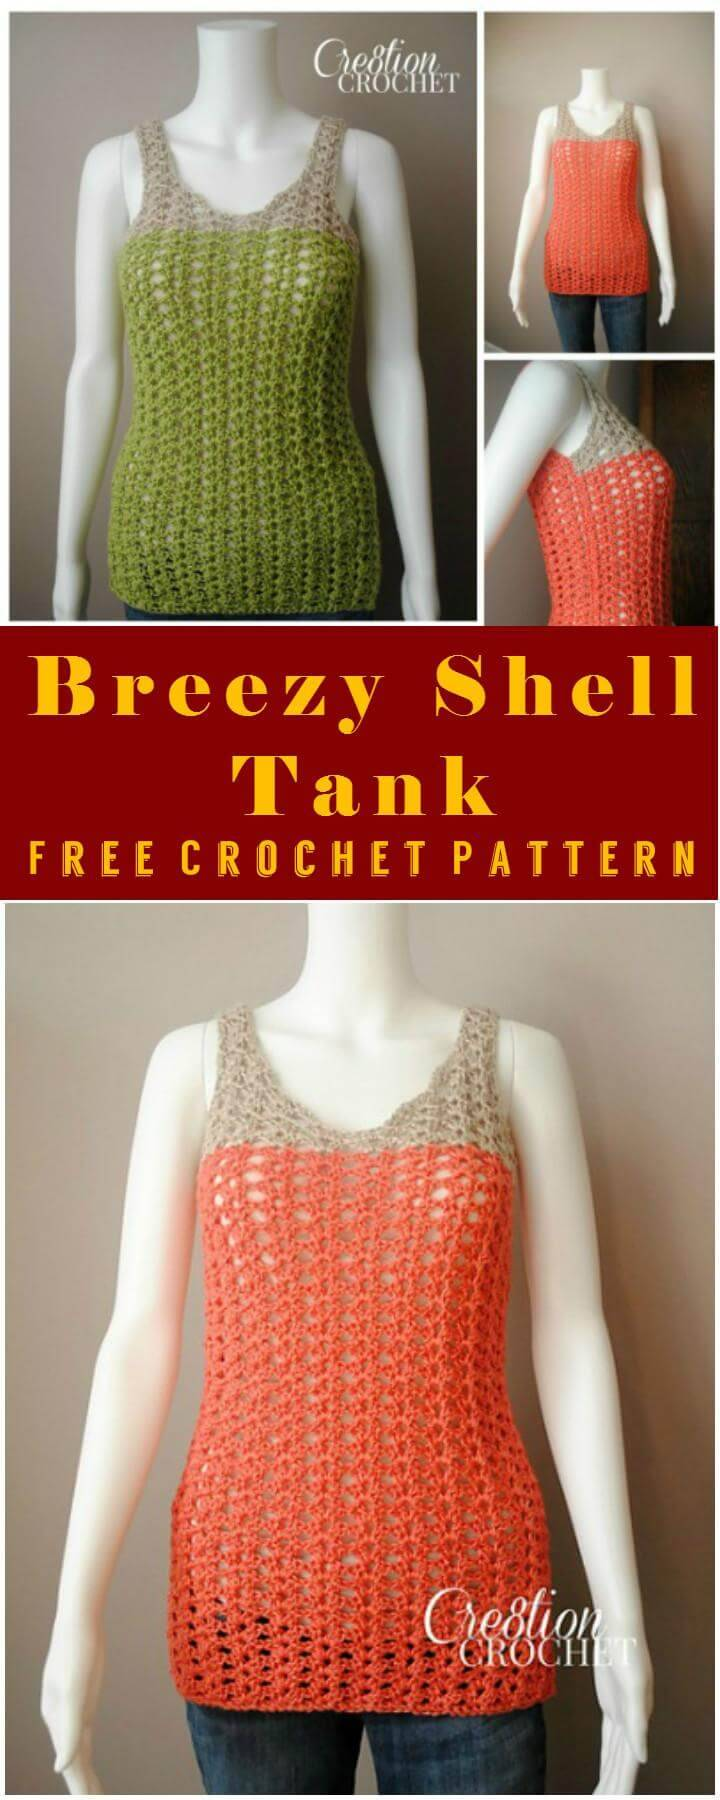 Breezy Shell Tank Free Crochet Pattern